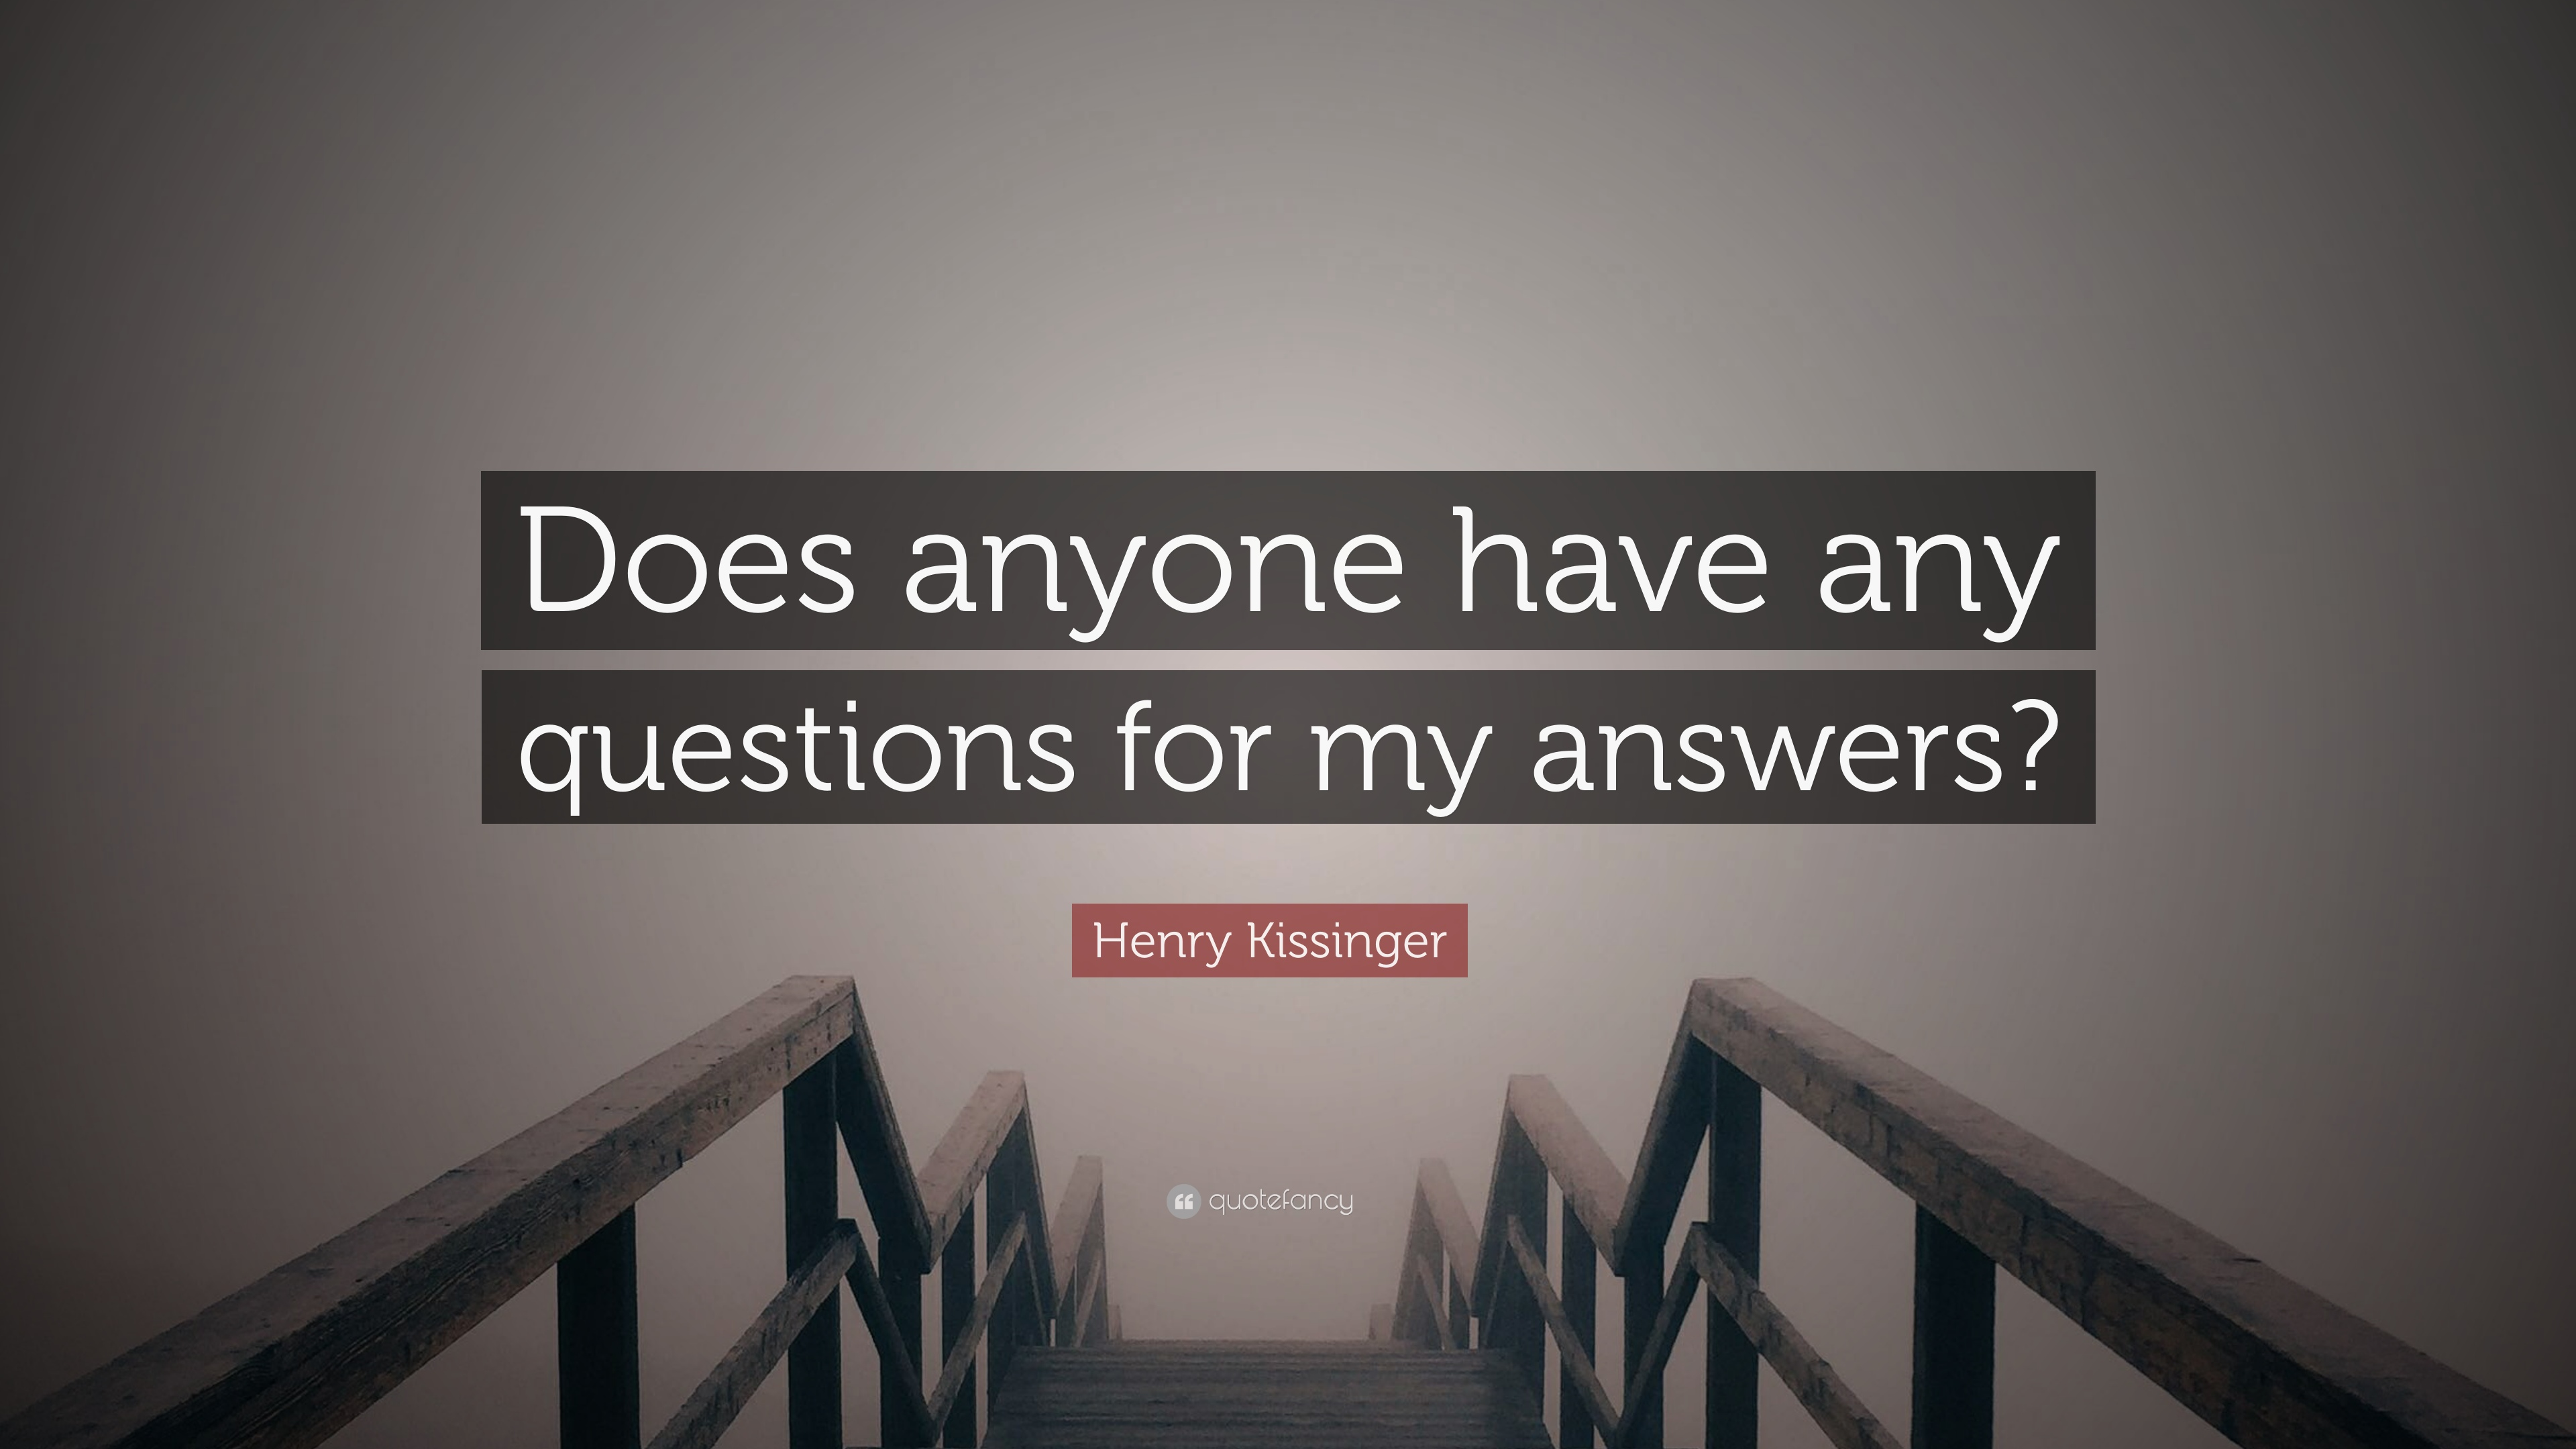 henry kissinger quote does anyone have any questions for my